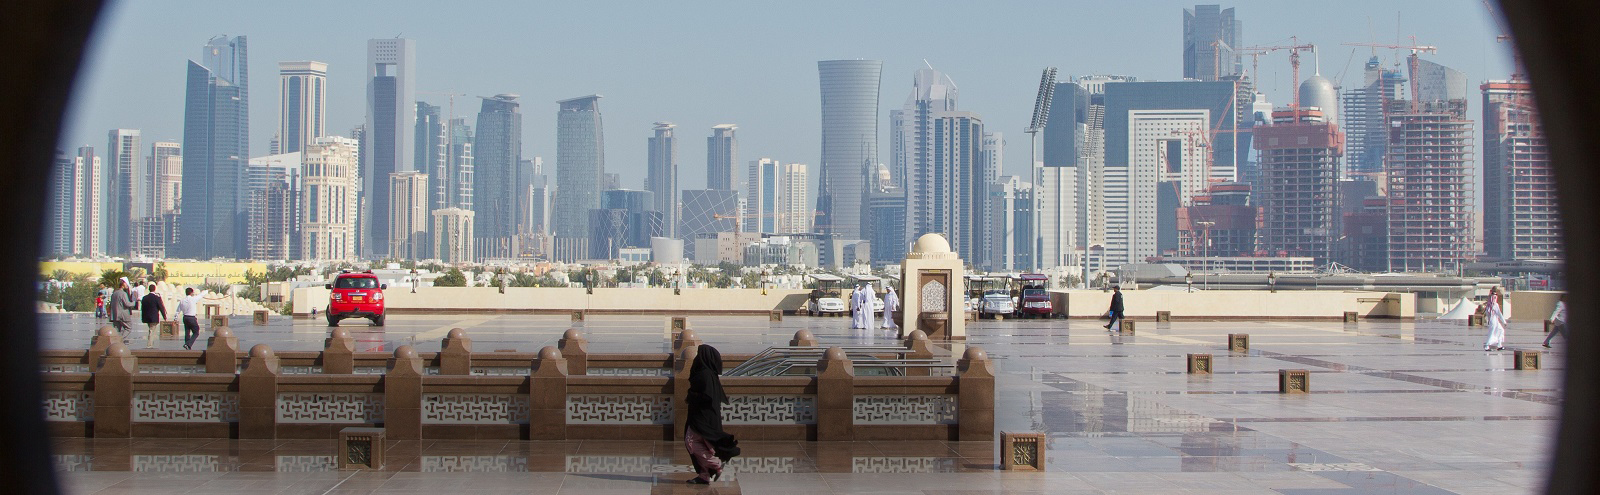 Doha skyline (Photo:Flickr/Omar Chatriwala)